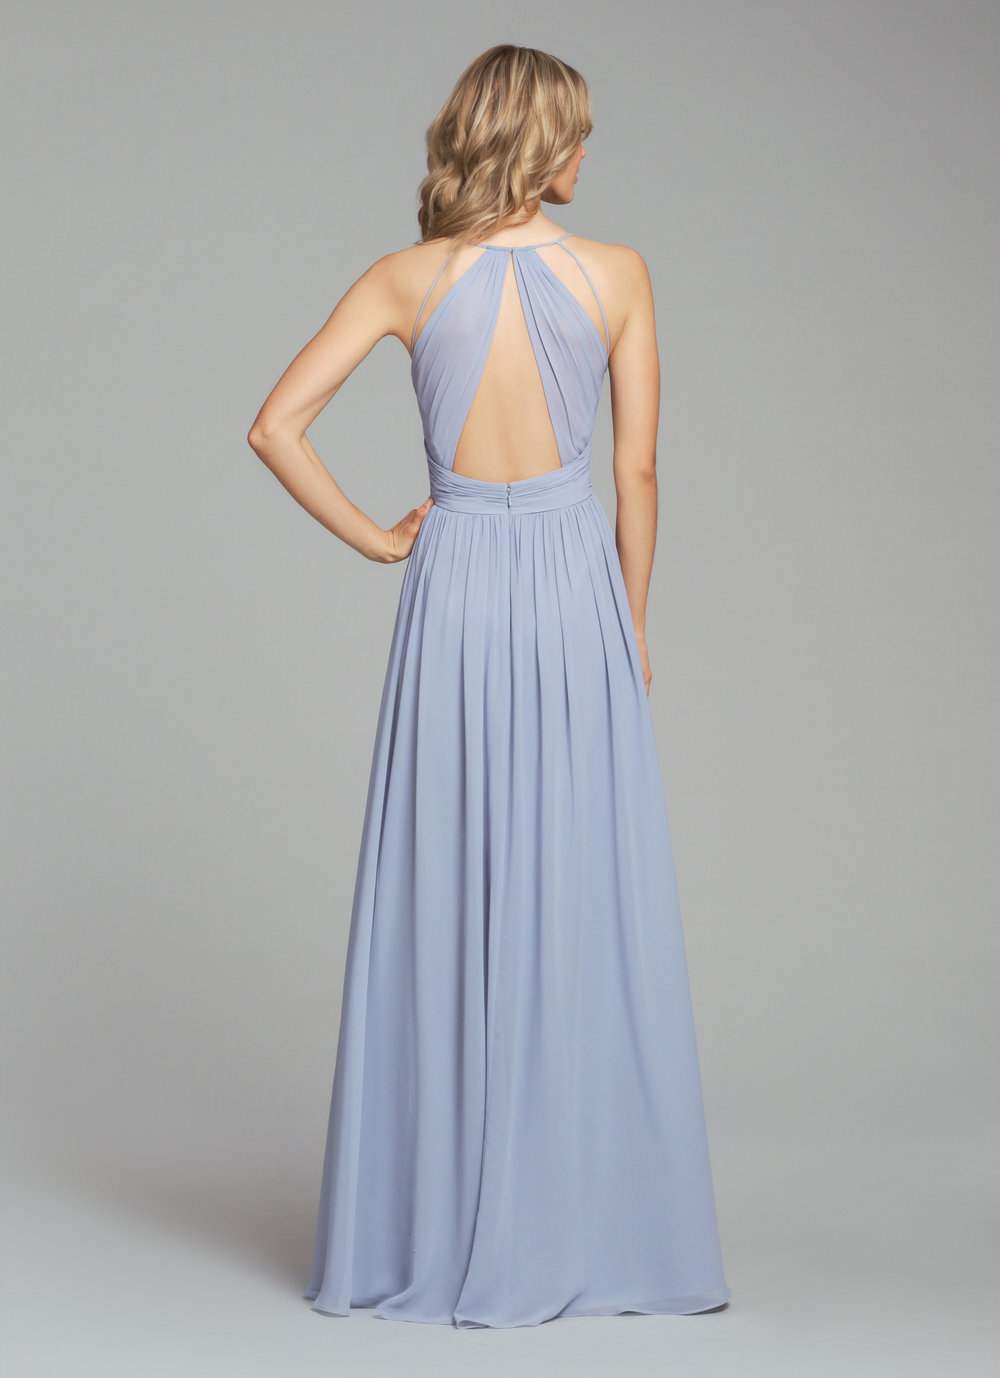 hayley-paige-occasions-bridesmaids-fall-2018-style-5855_2.jpg